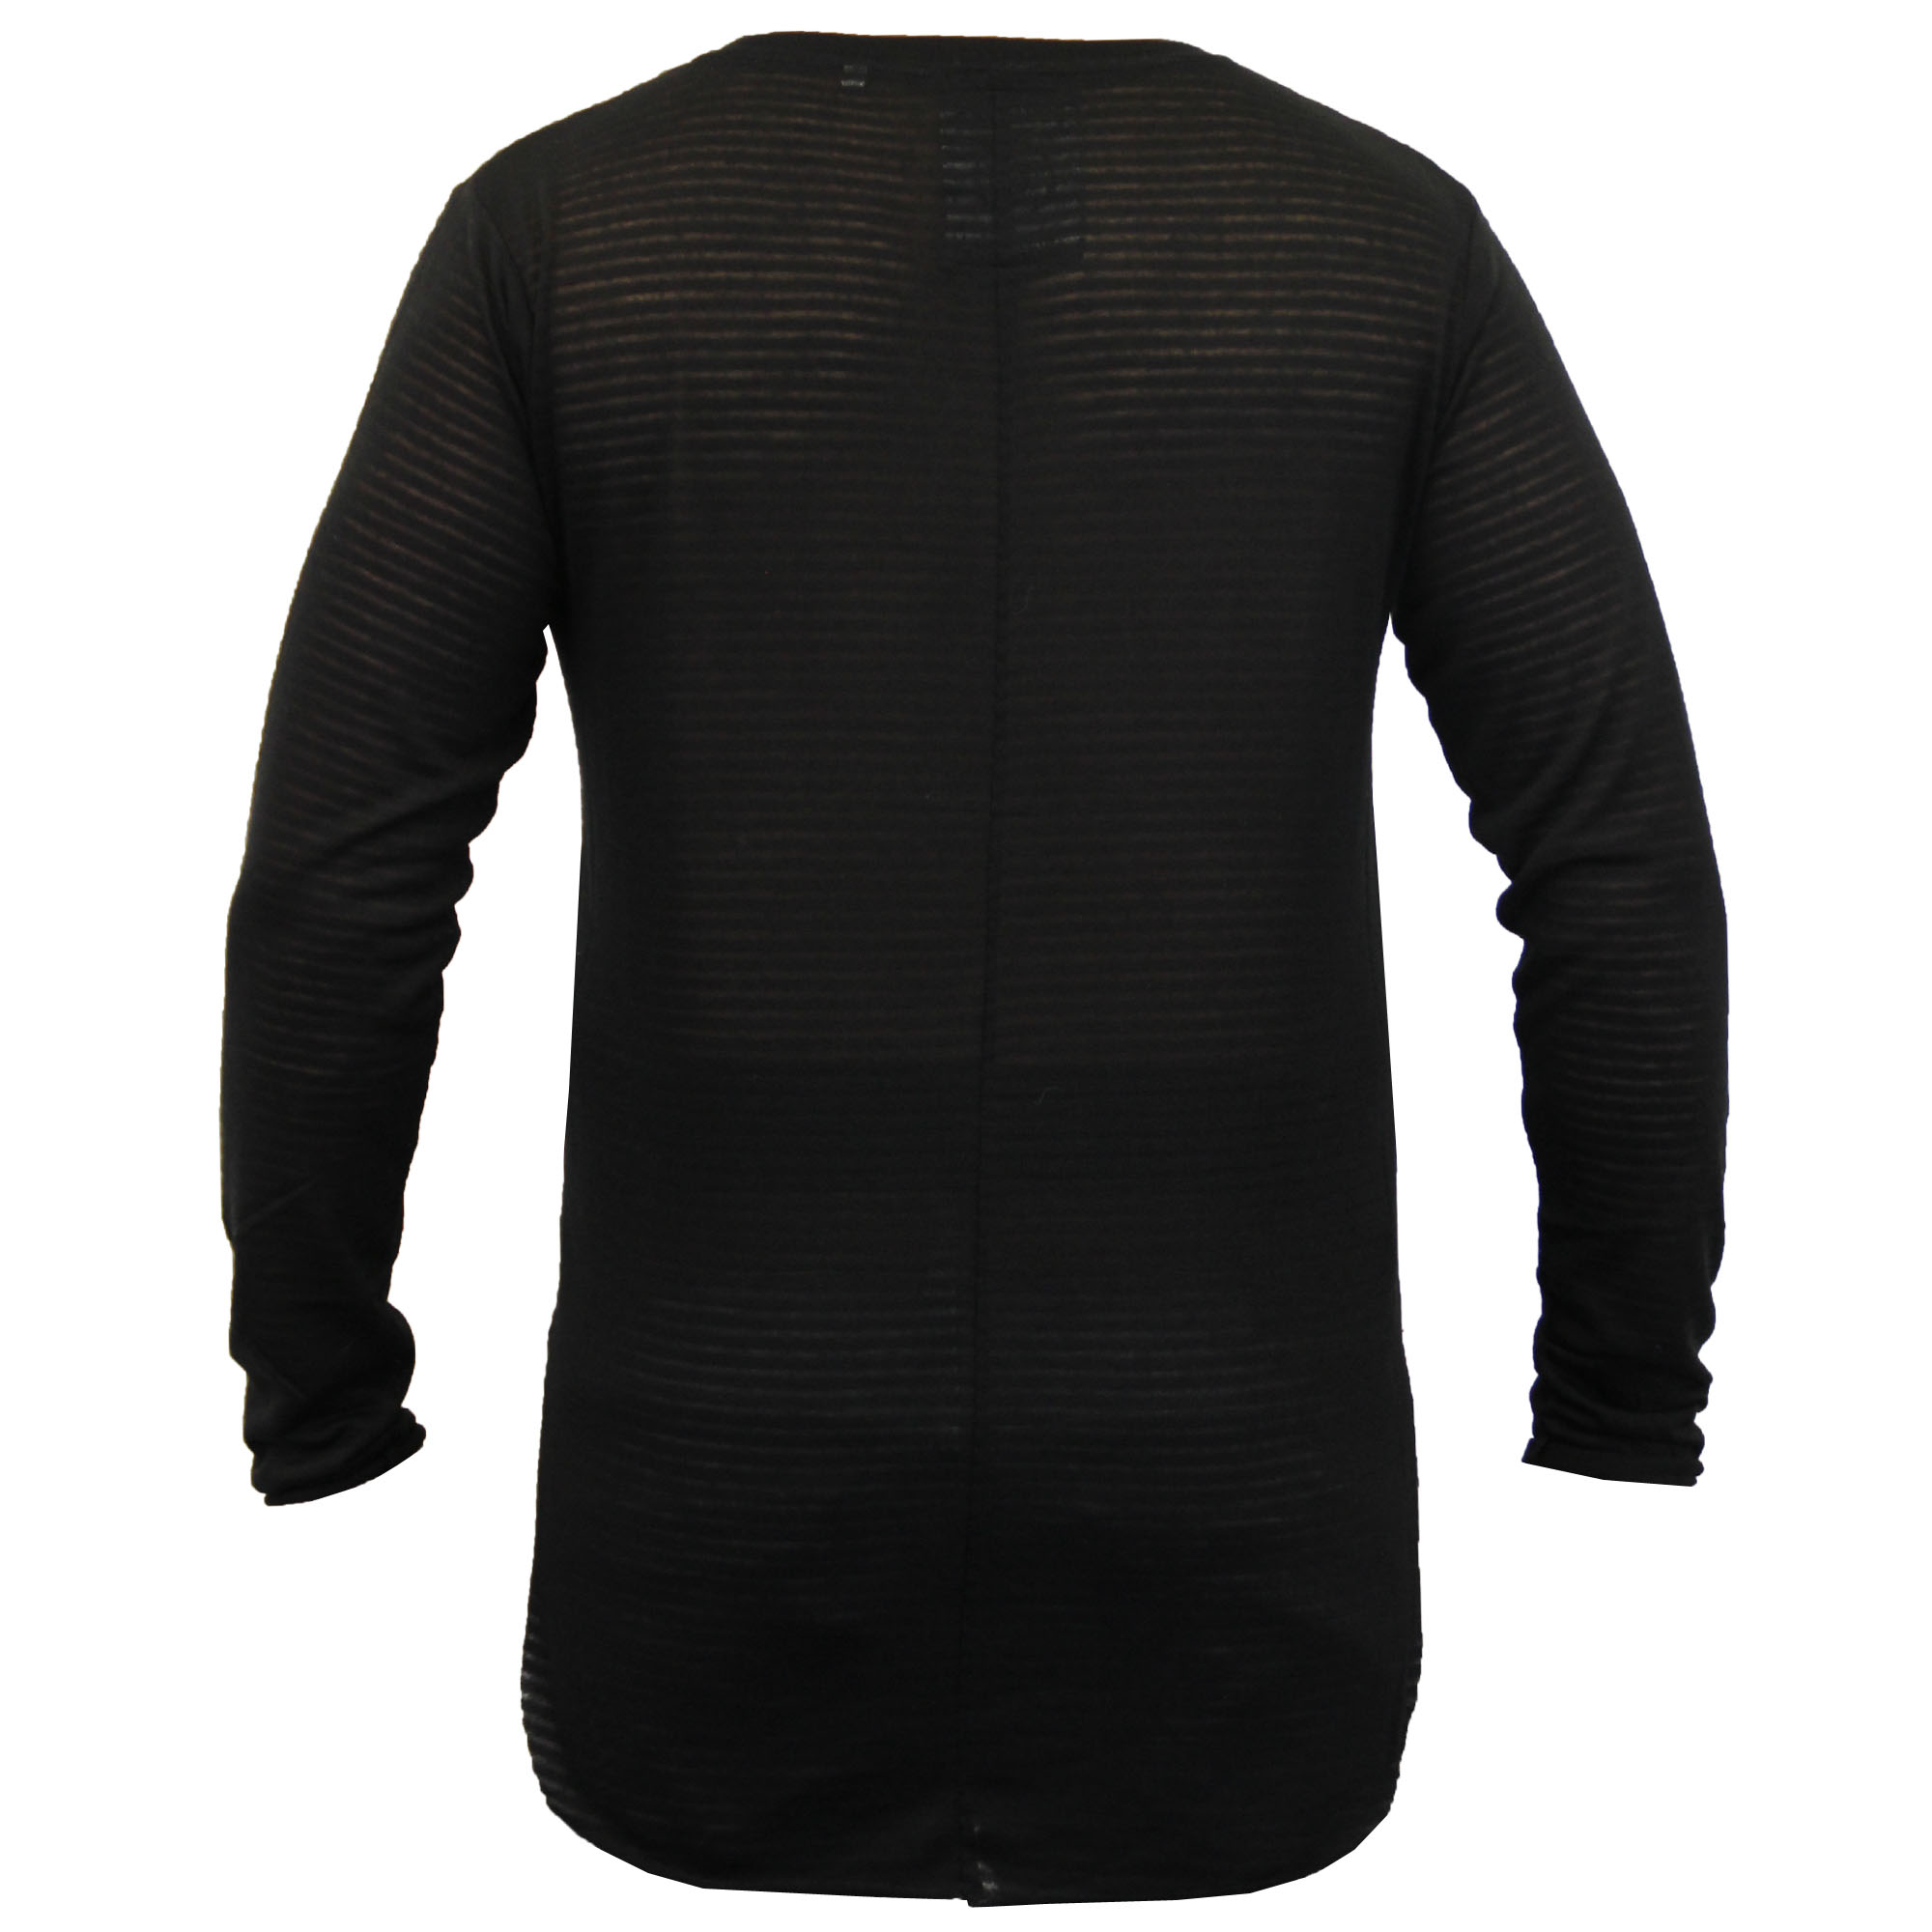 Mens-Long-Line-Jumper-Soul-Star-Sweater-High-Low-Hem-Top-Knitted-Pullover-Winter thumbnail 6